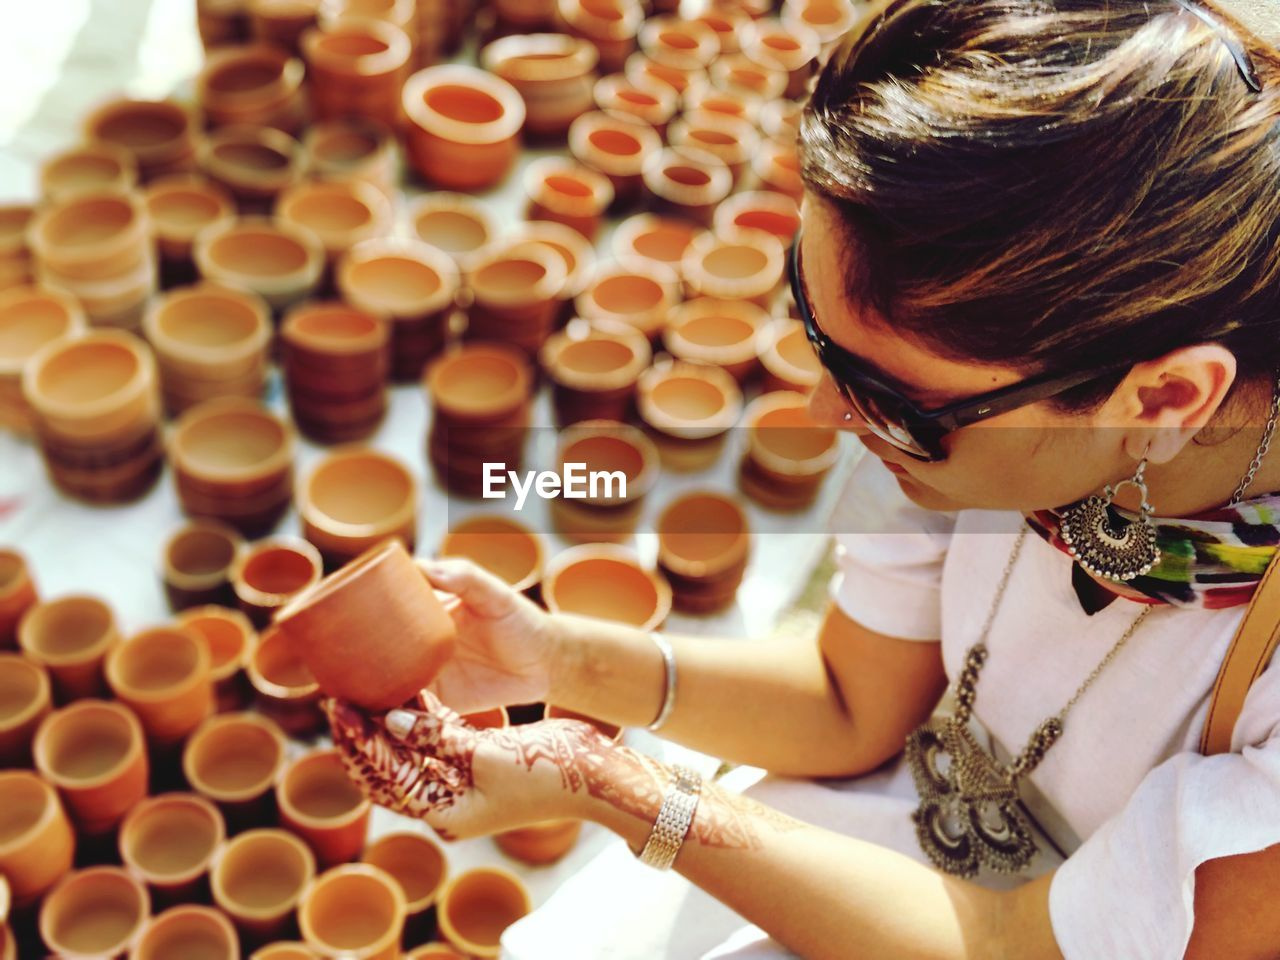 High Angle View Of Woman Holding Earthenware